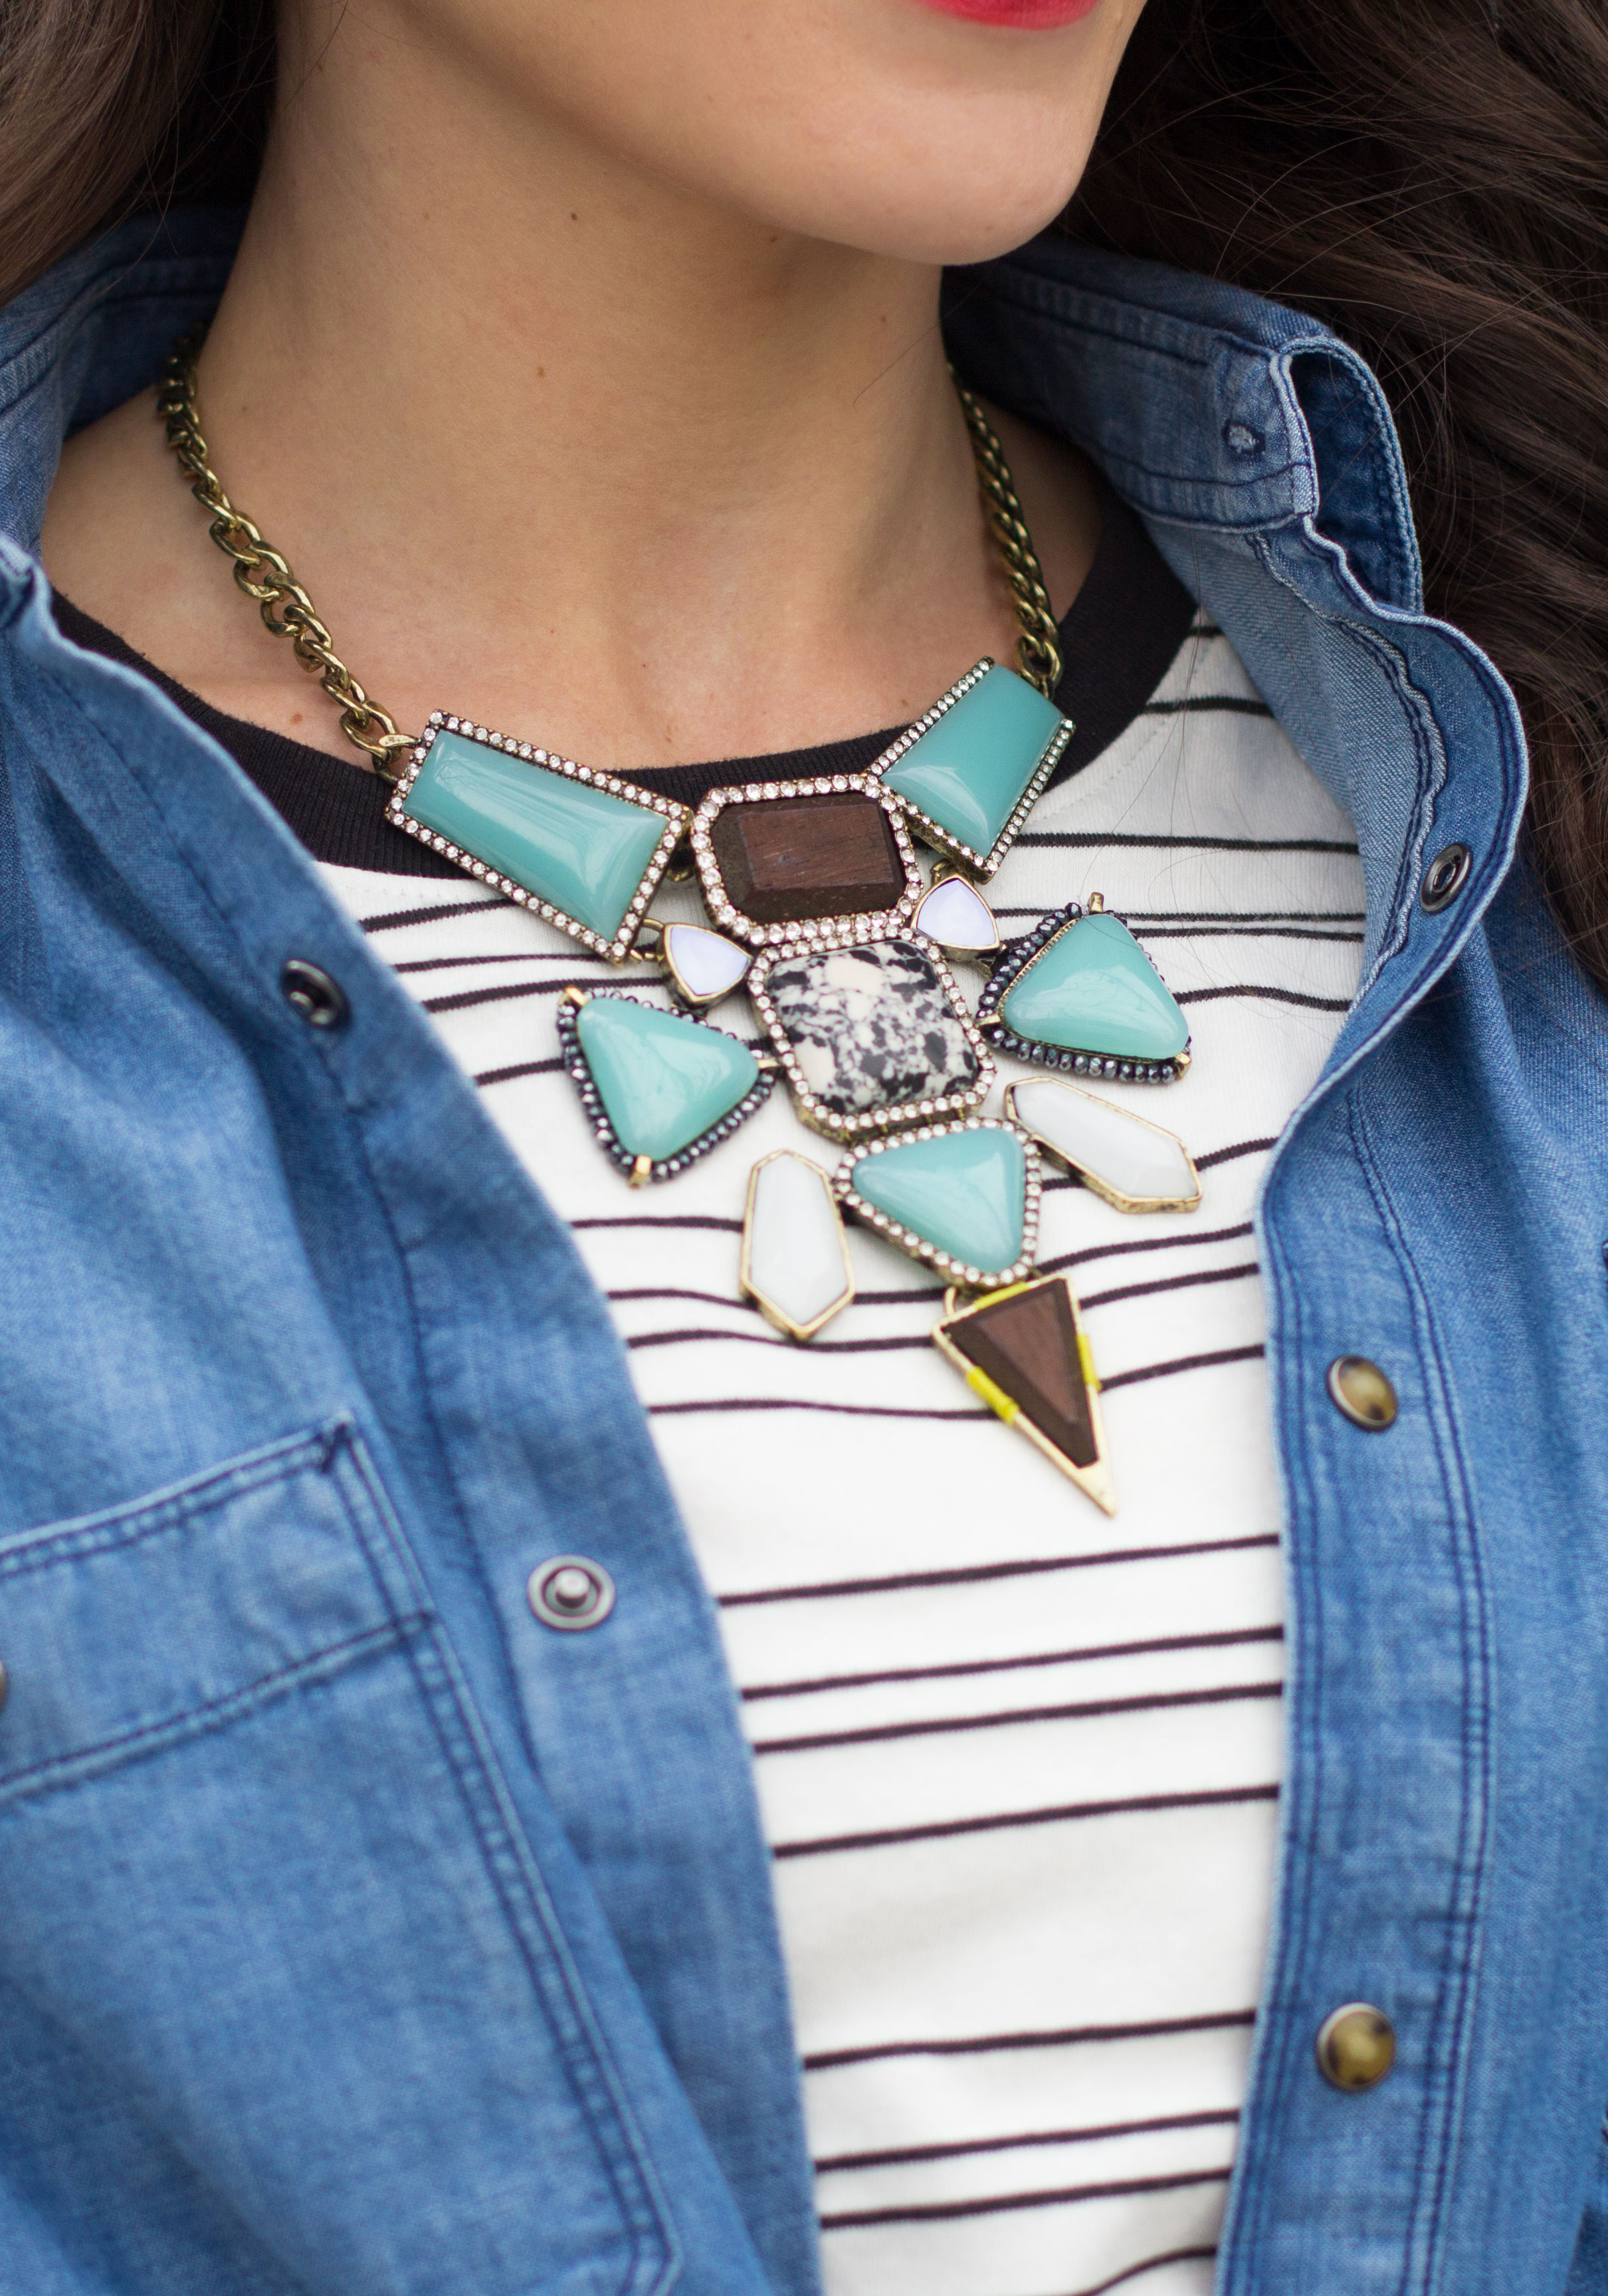 Baublebar Statement Necklace, Stripe Tee, Denim Boyfriend Shirt